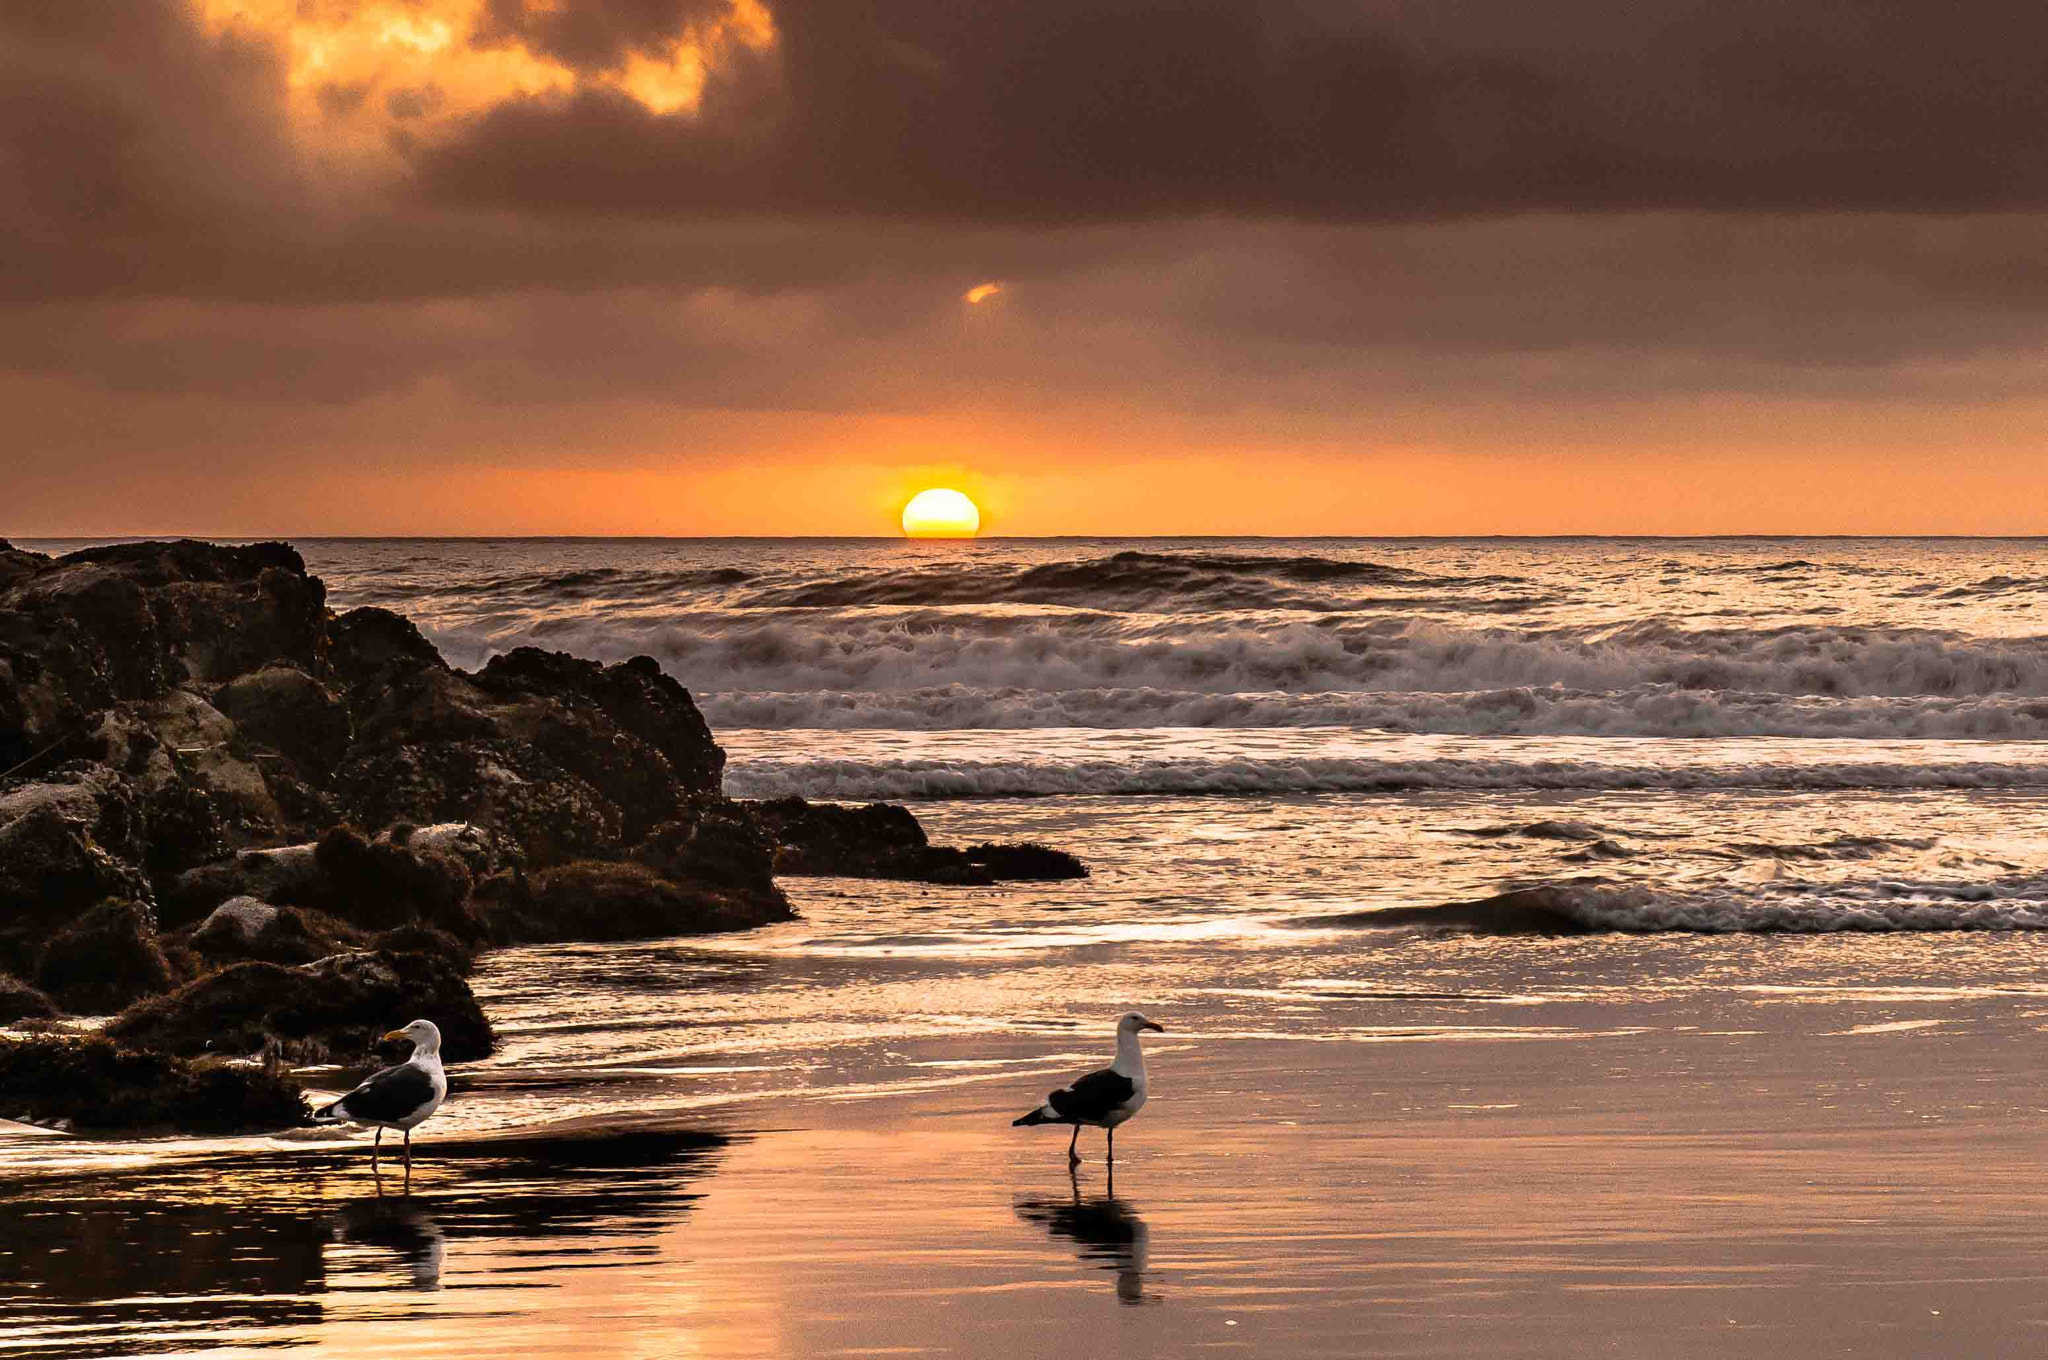 Photograph Sunset on the Beach by Ceasar Sharper on 500px